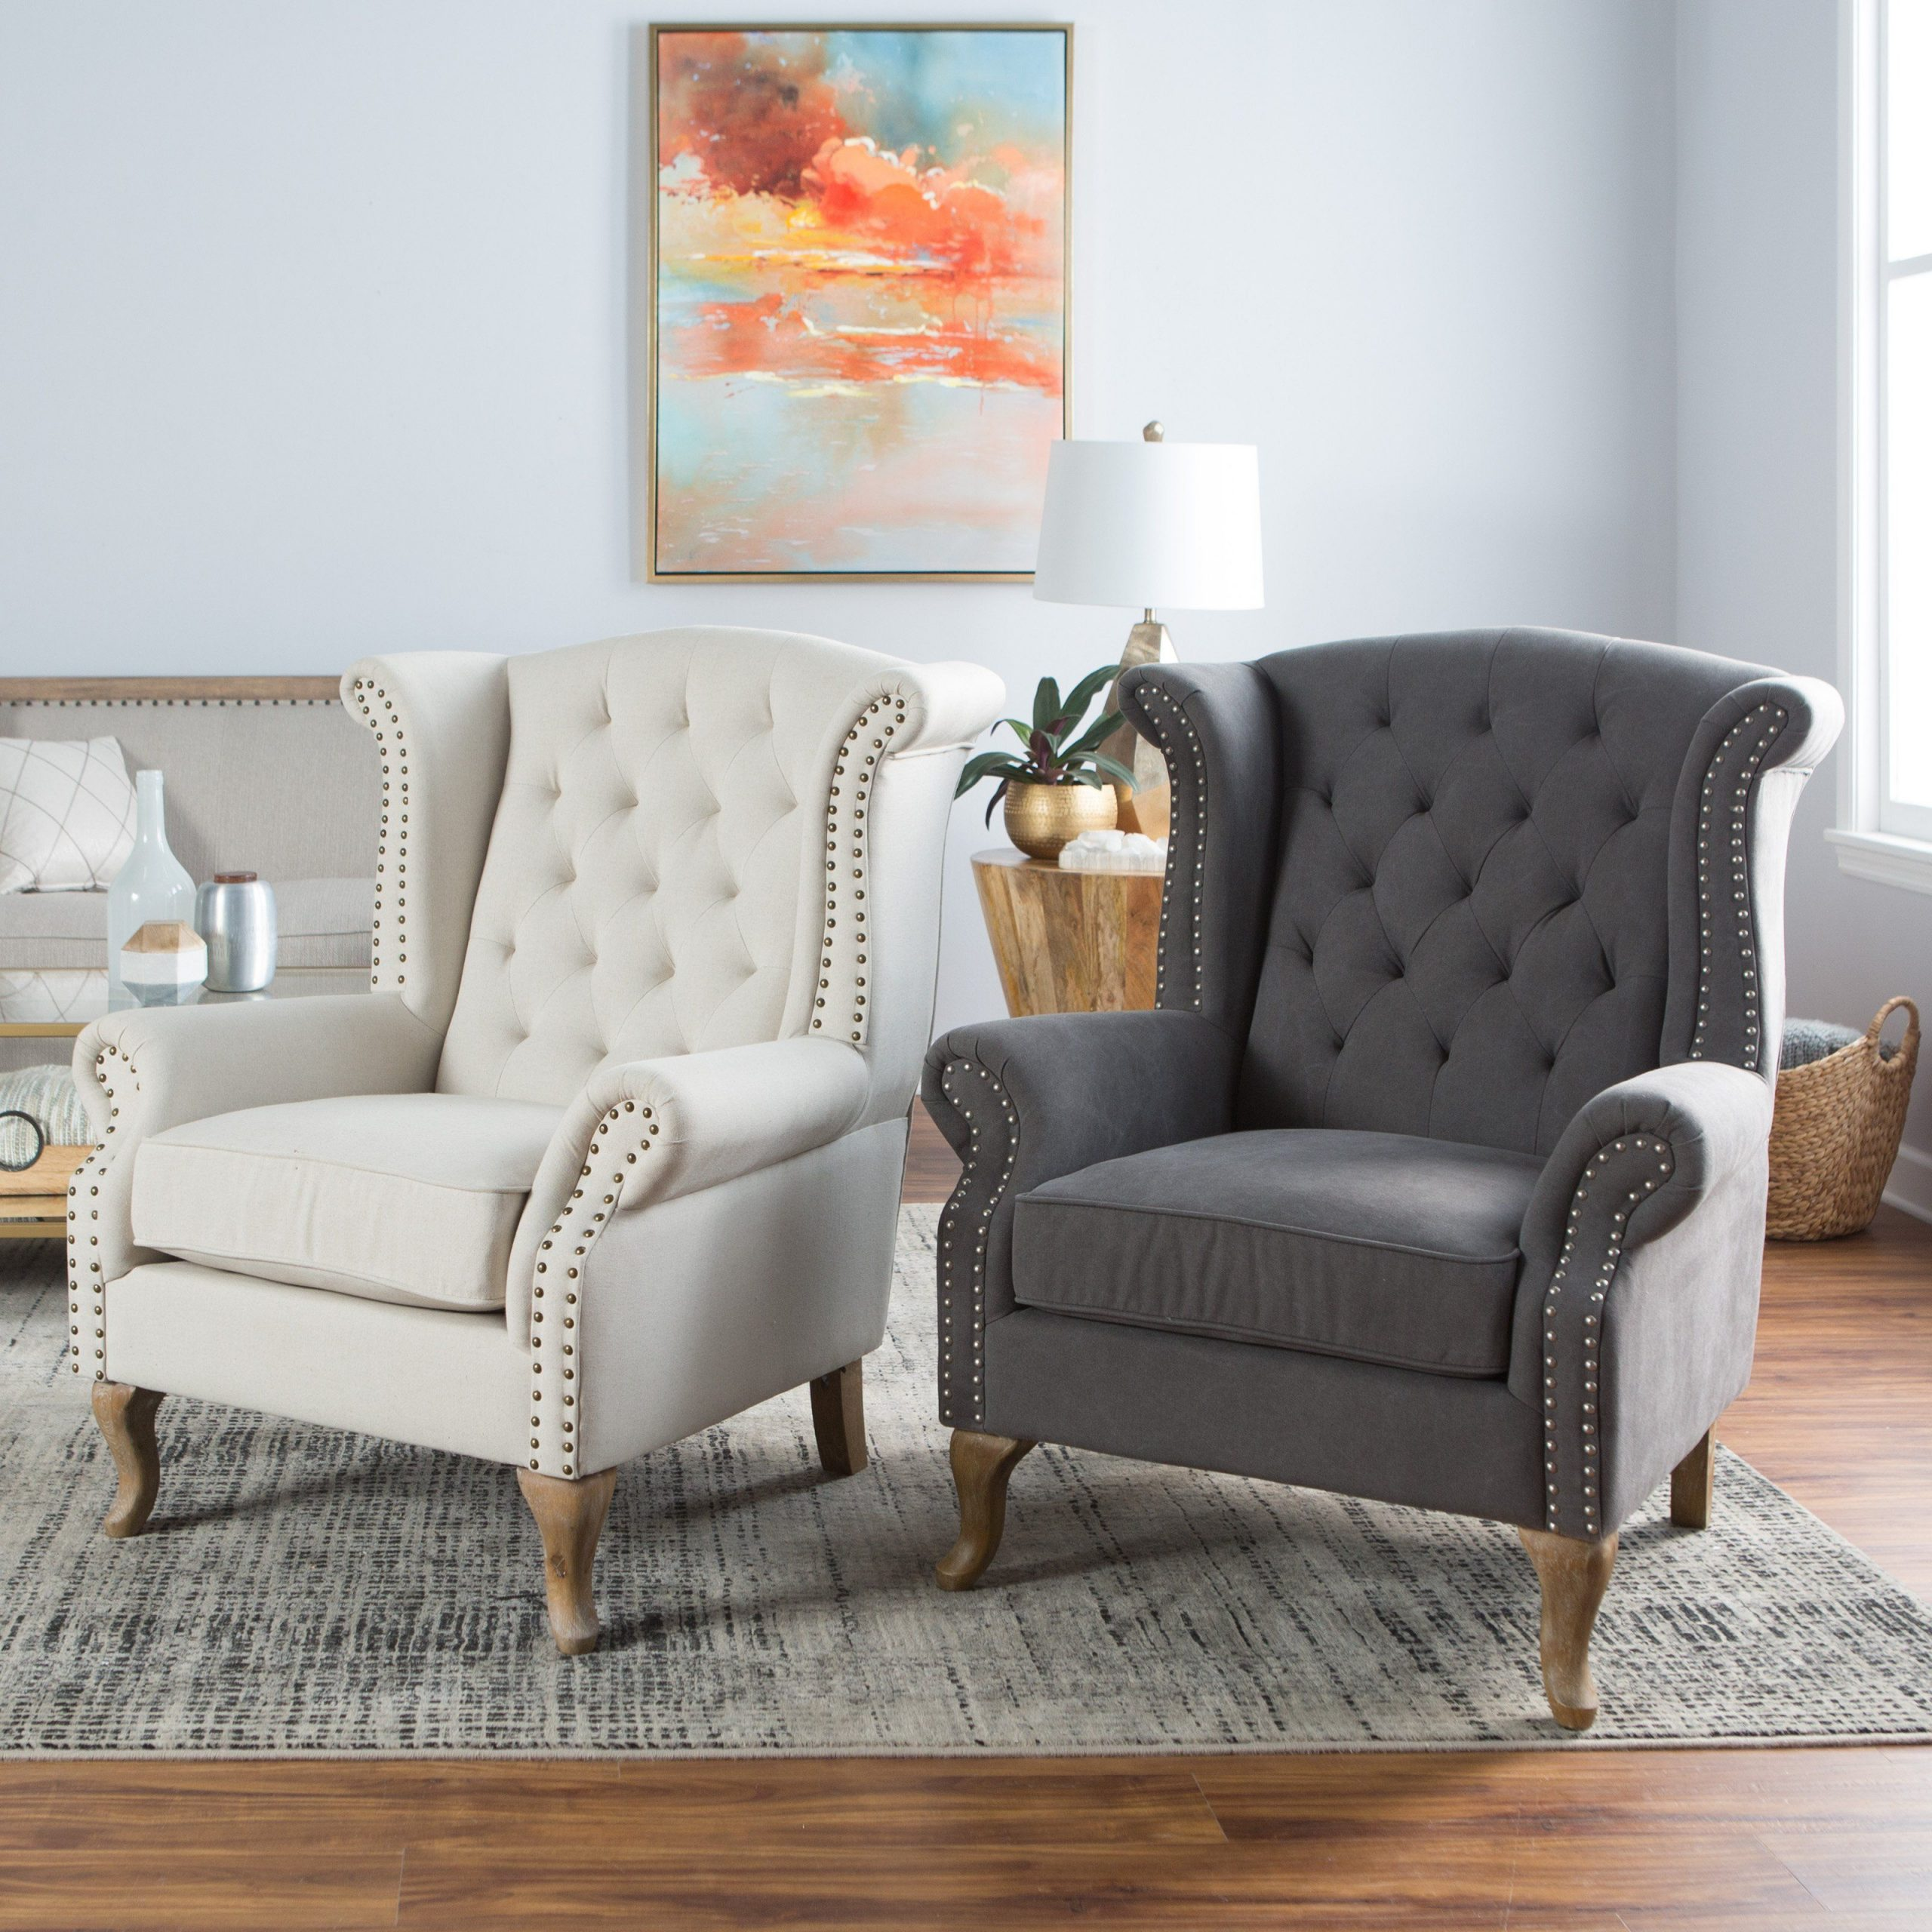 Furniture Interior Design Ideas | Furniture In Fashion Throughout Living Room Sofa And Chair Sets (View 9 of 15)